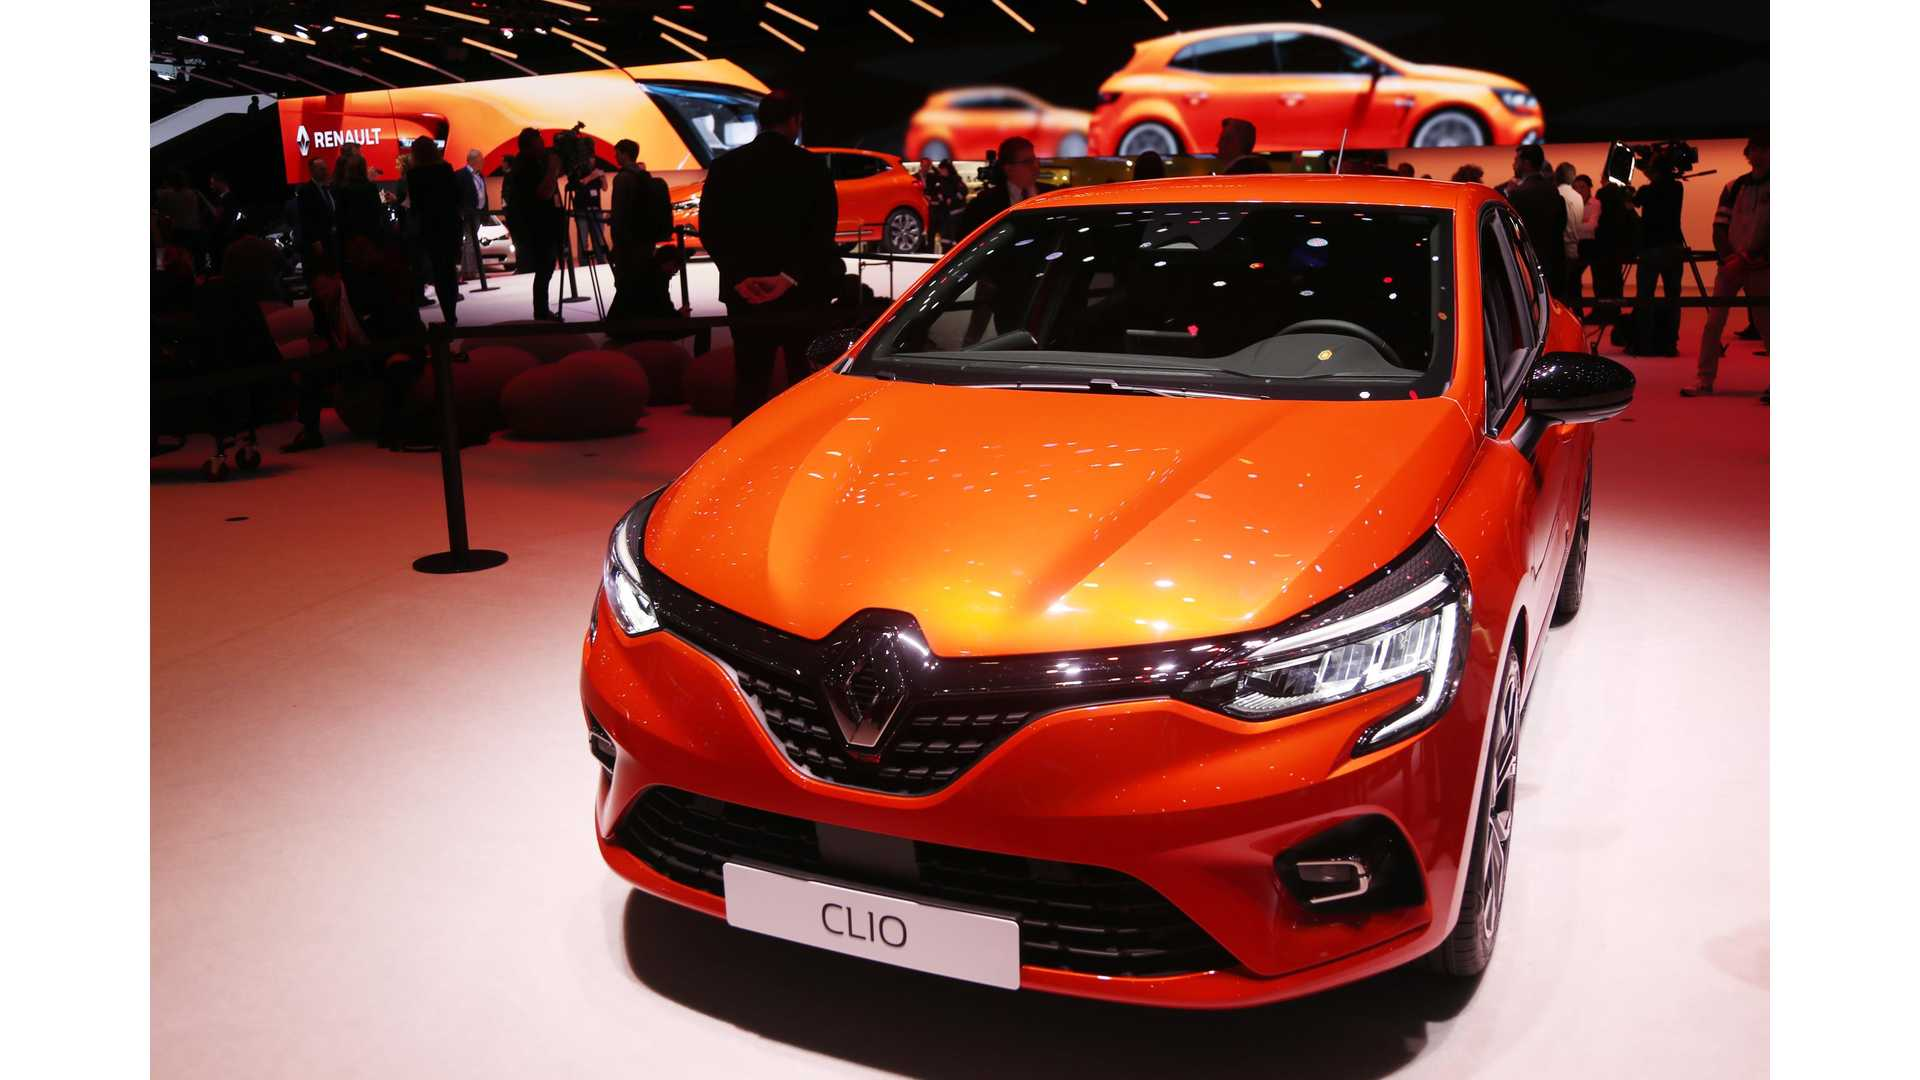 New Renault Clio Previews Interior Of New Electric ZOE